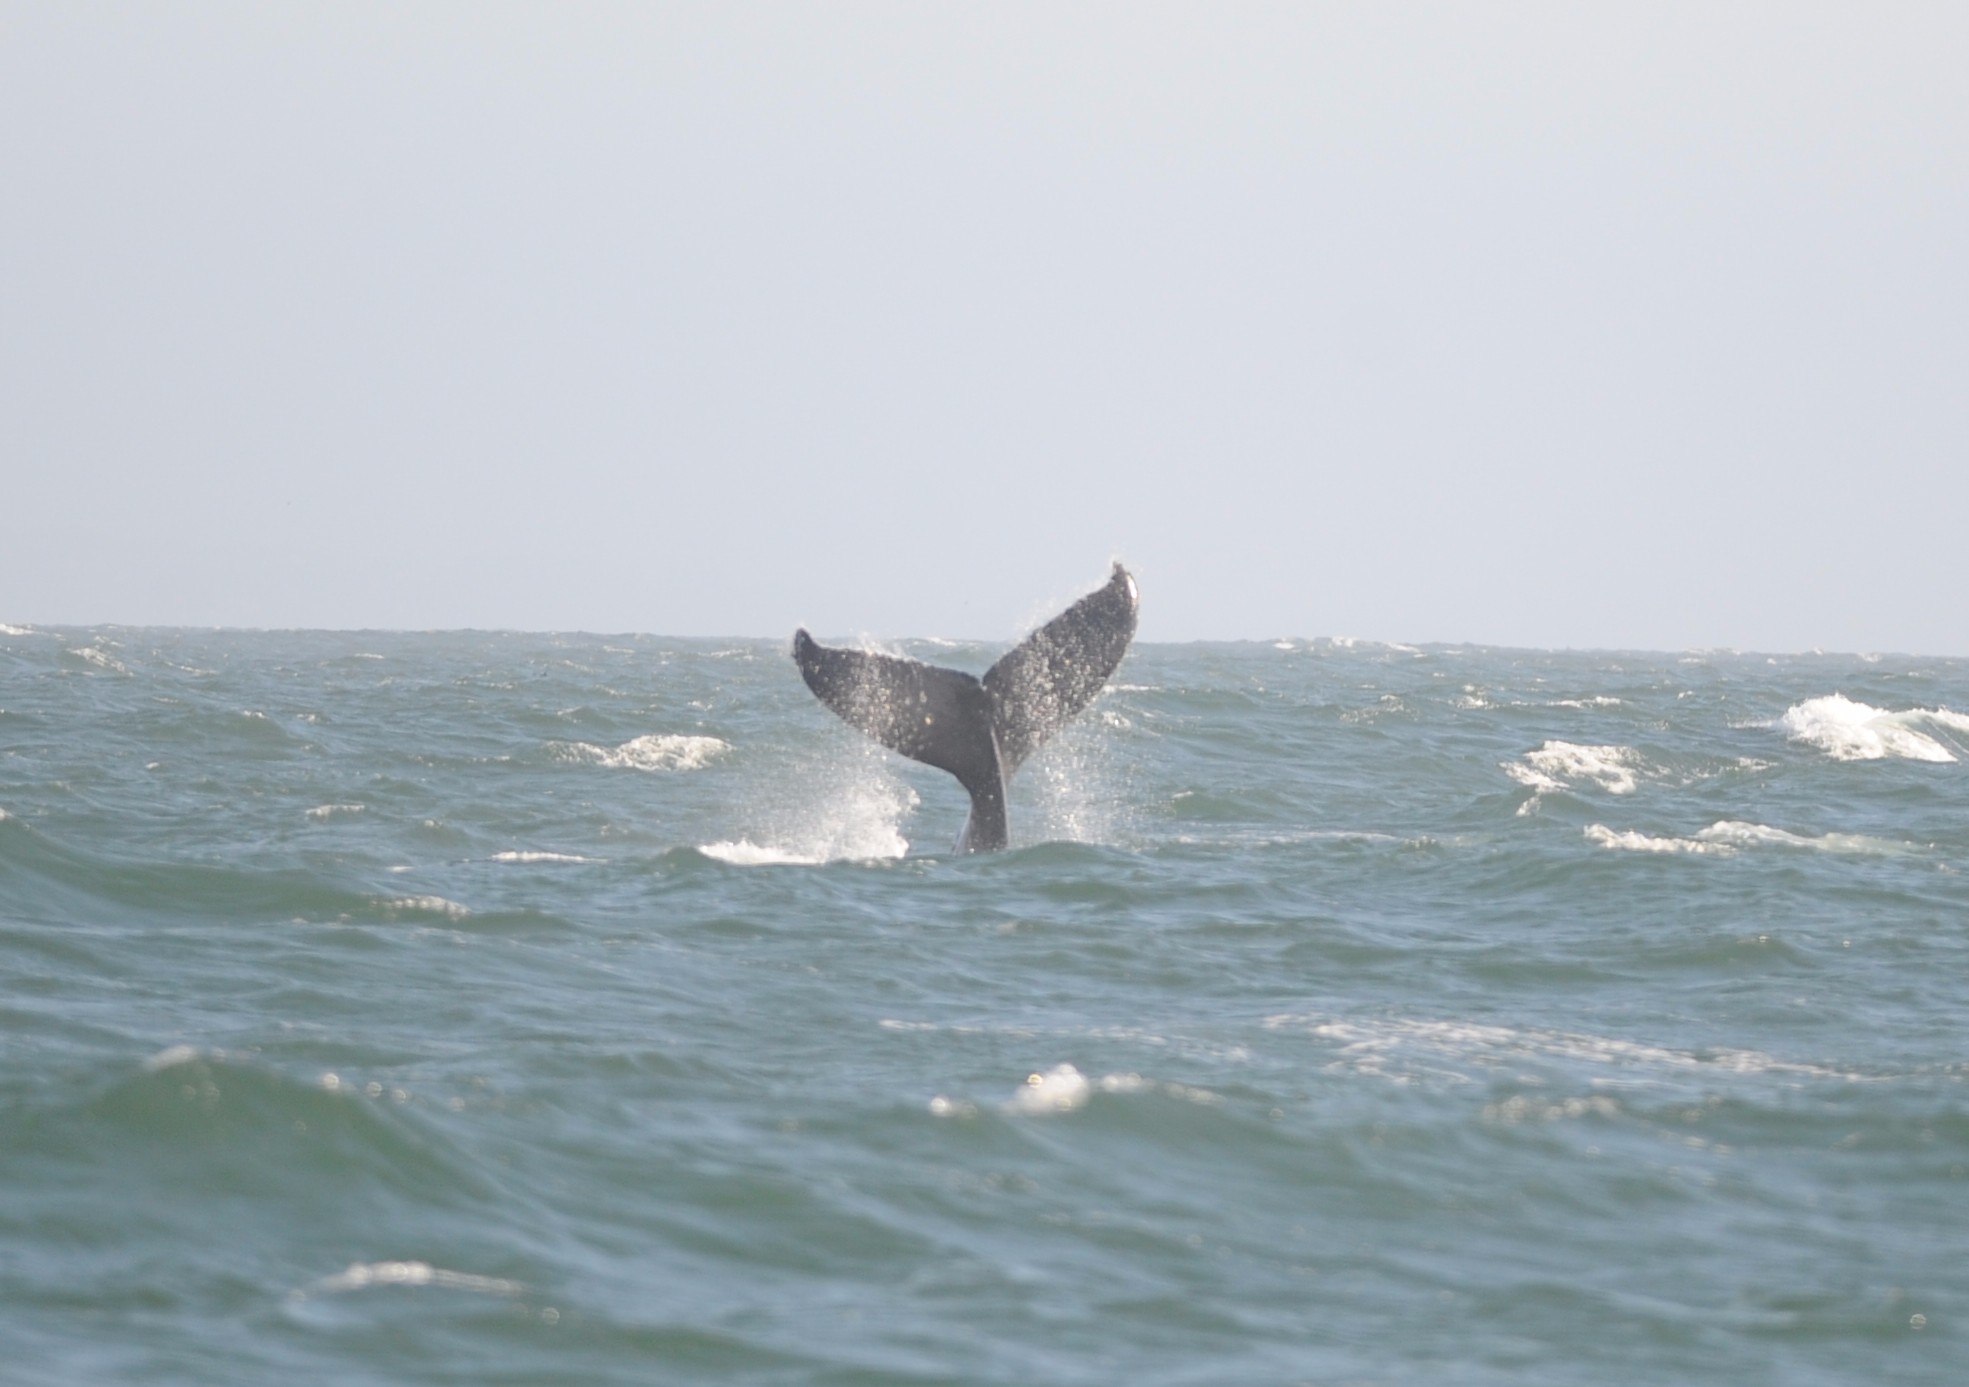 Humpback about to tail slap.